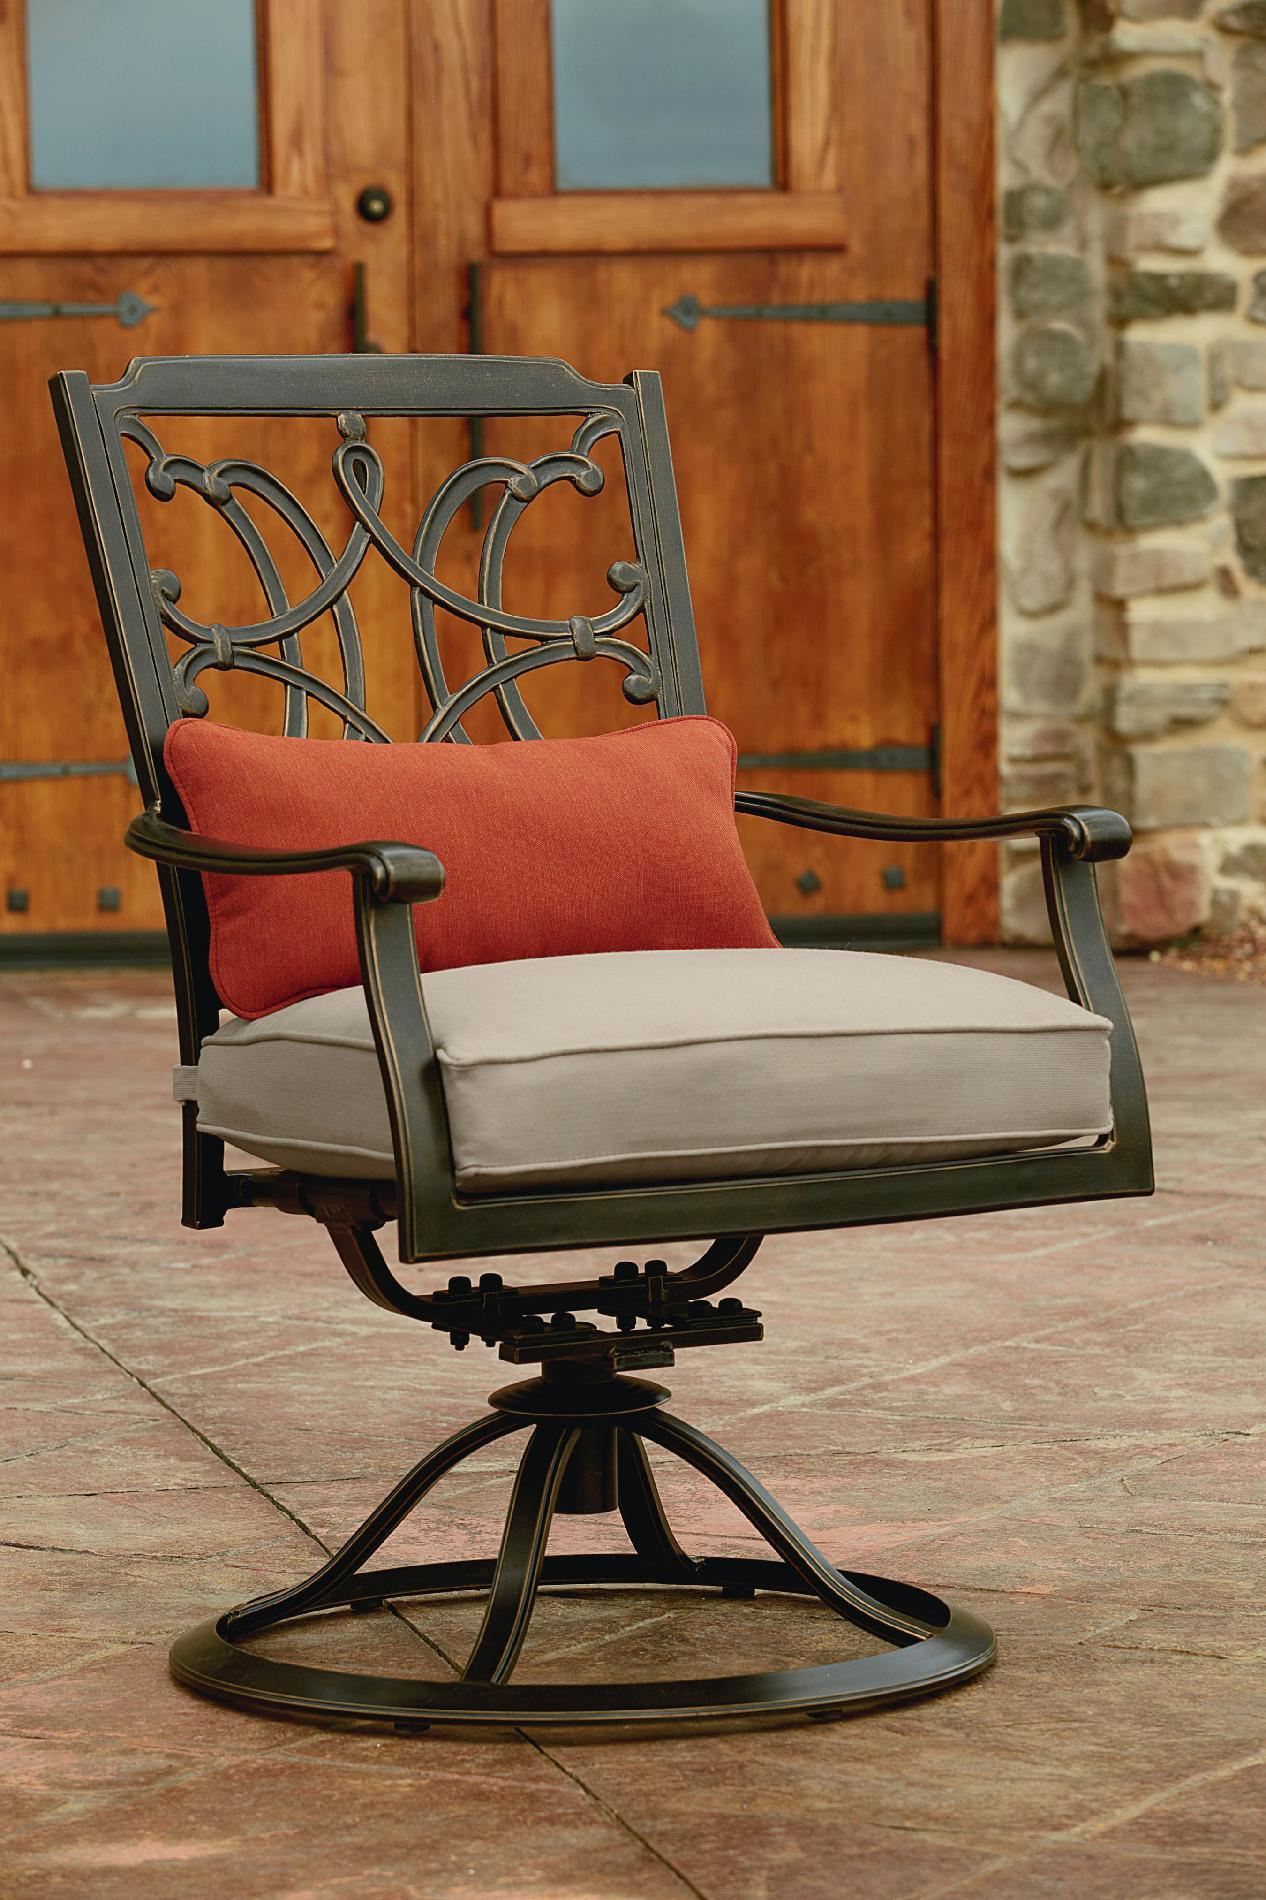 Agio Tuscany Outdoor 7 Piece Patio Dining Set Featuring Sunbrella&reg Fabric *Limited Availability